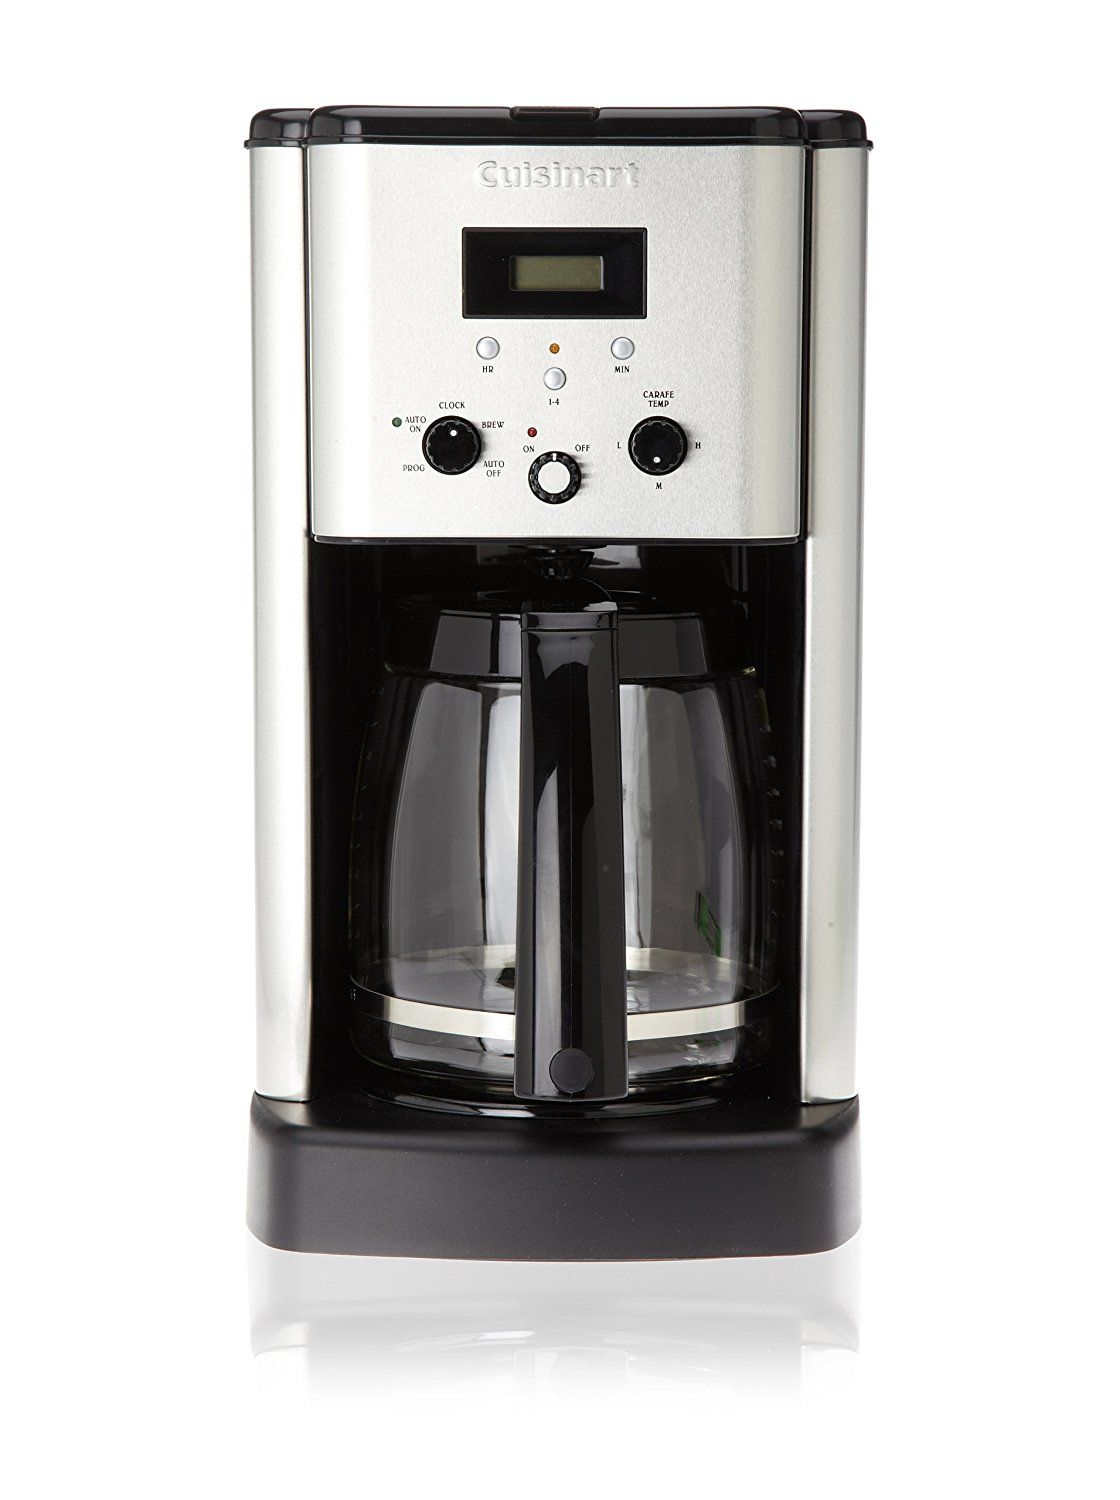 Cuisinart 12cup Coffee Maker Brushed Metal Finish > Find